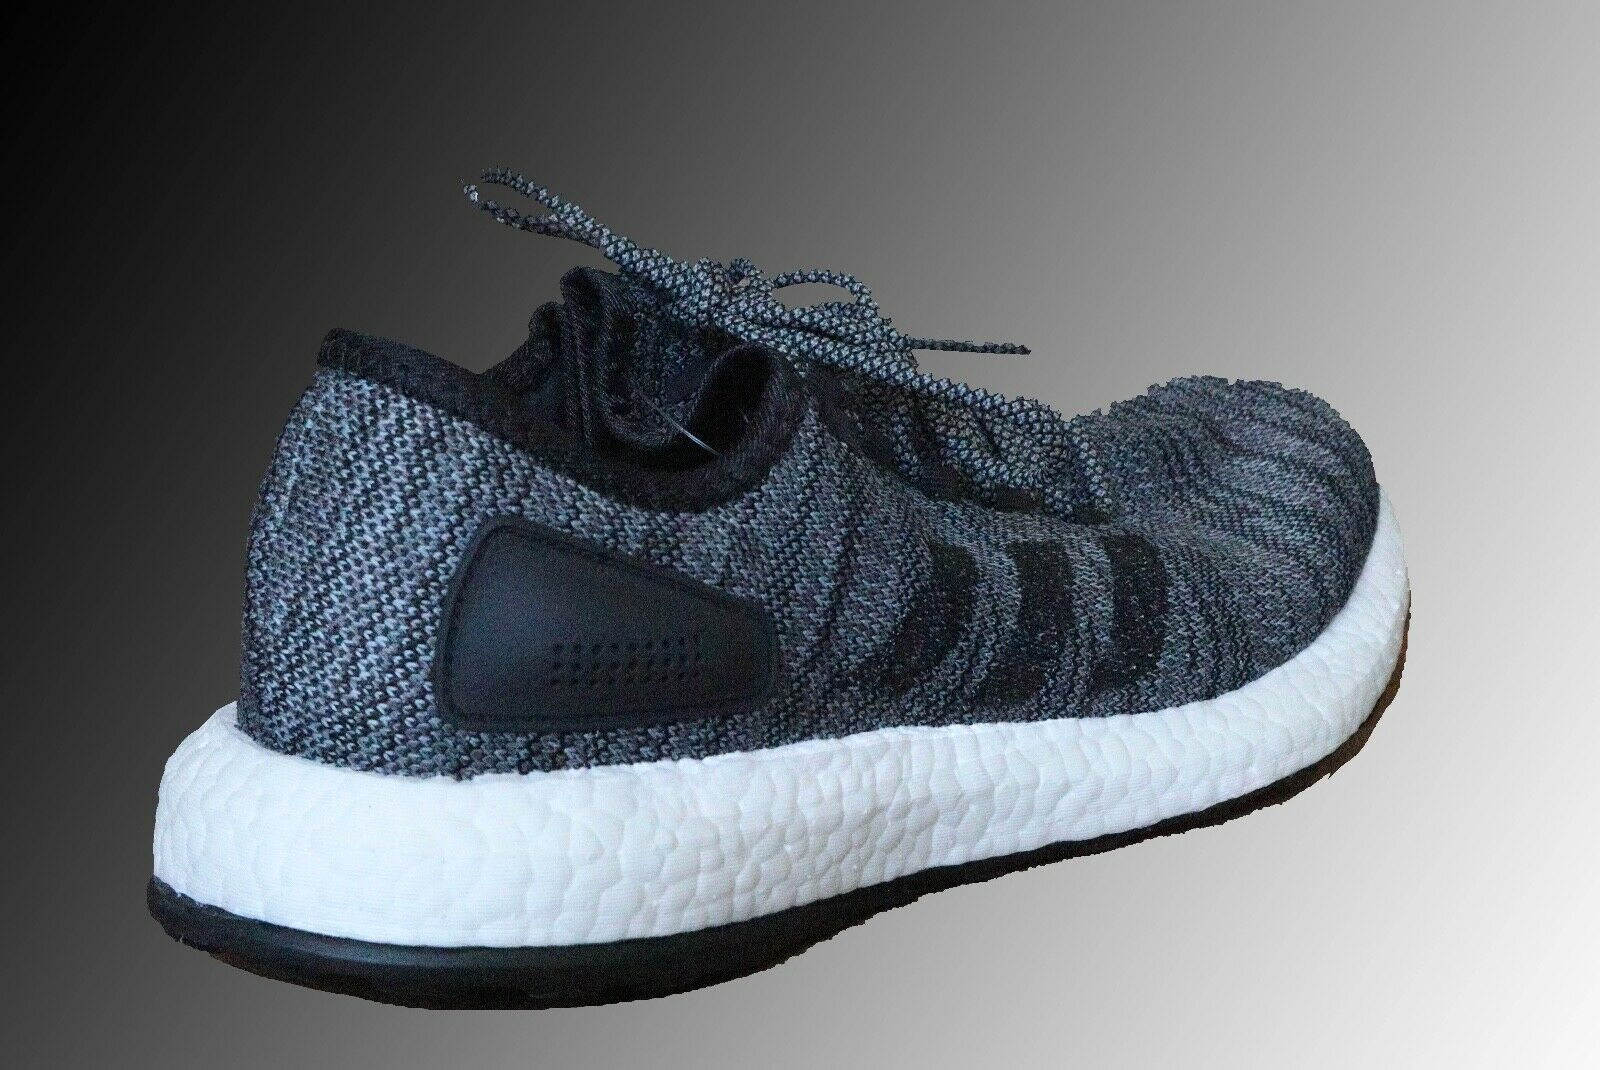 Adidas PureBOOST All Terrain S80787 Sneakers Black    Grey Men Size 8, 10.5 and 13 192df1